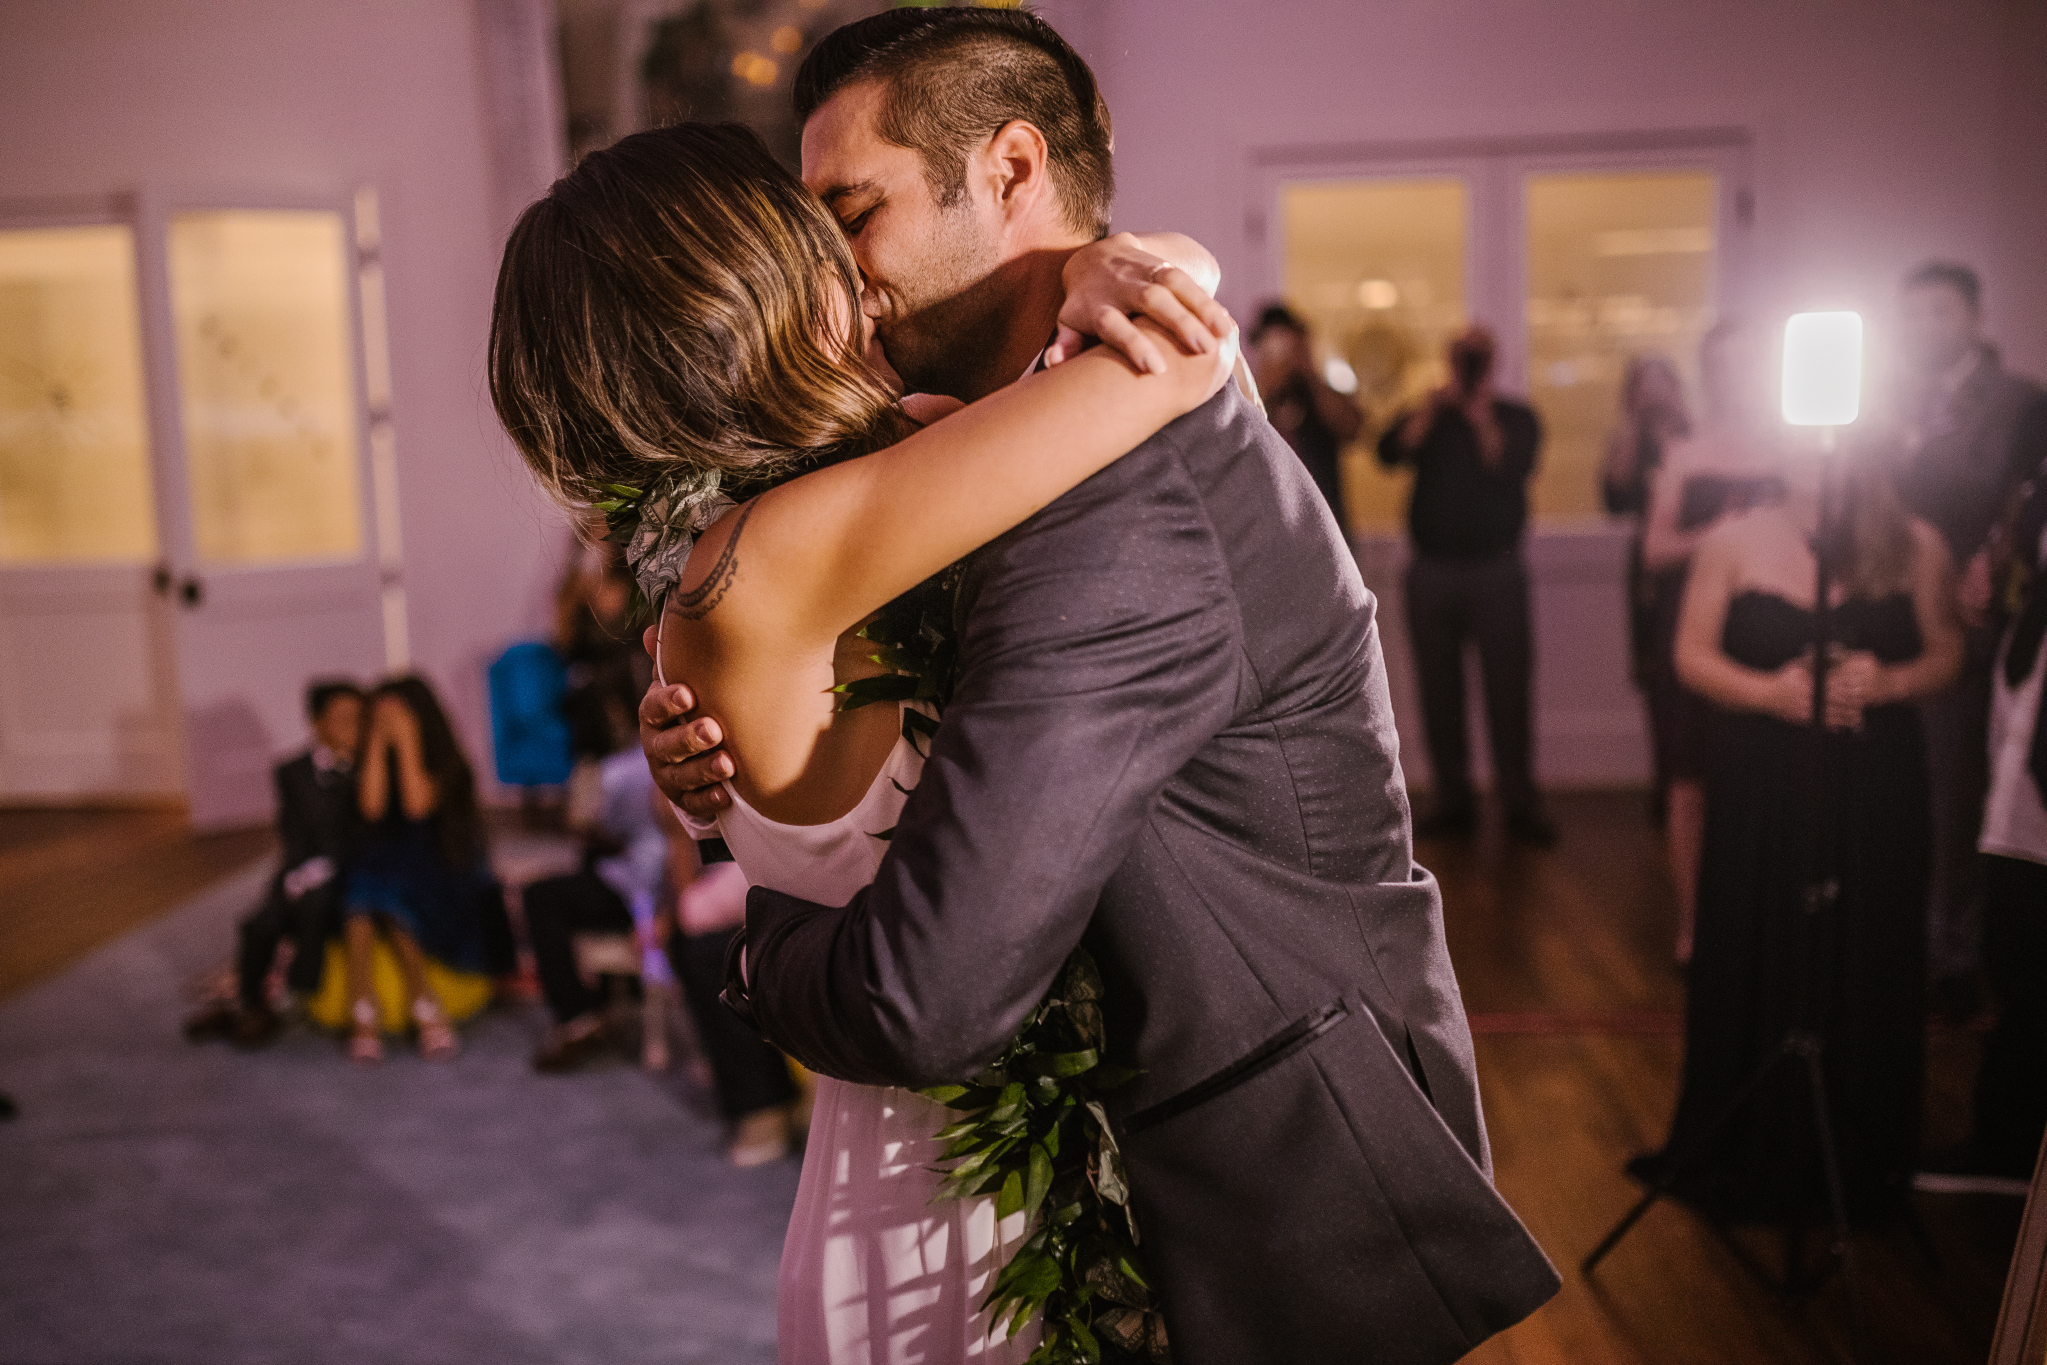 san diego wedding photographer   bride and groom standing and hugging tightly on dance floor with lighting in background